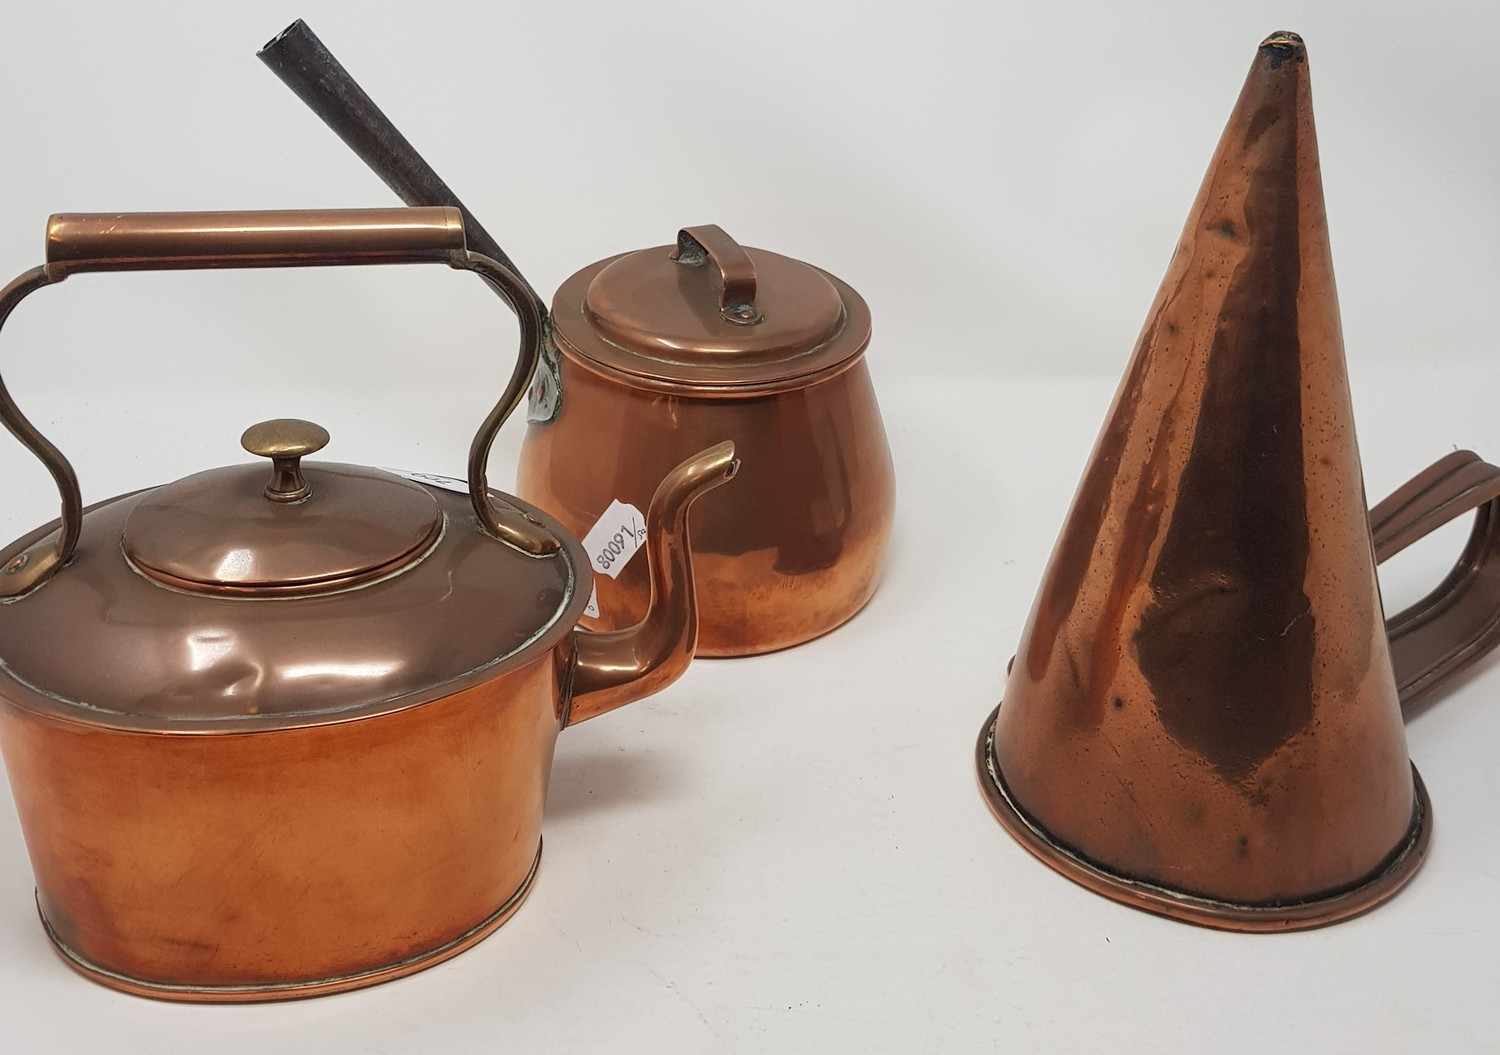 A brass and copper preserve pan, 44 cm diameter and other metalwares (4) - Image 3 of 3